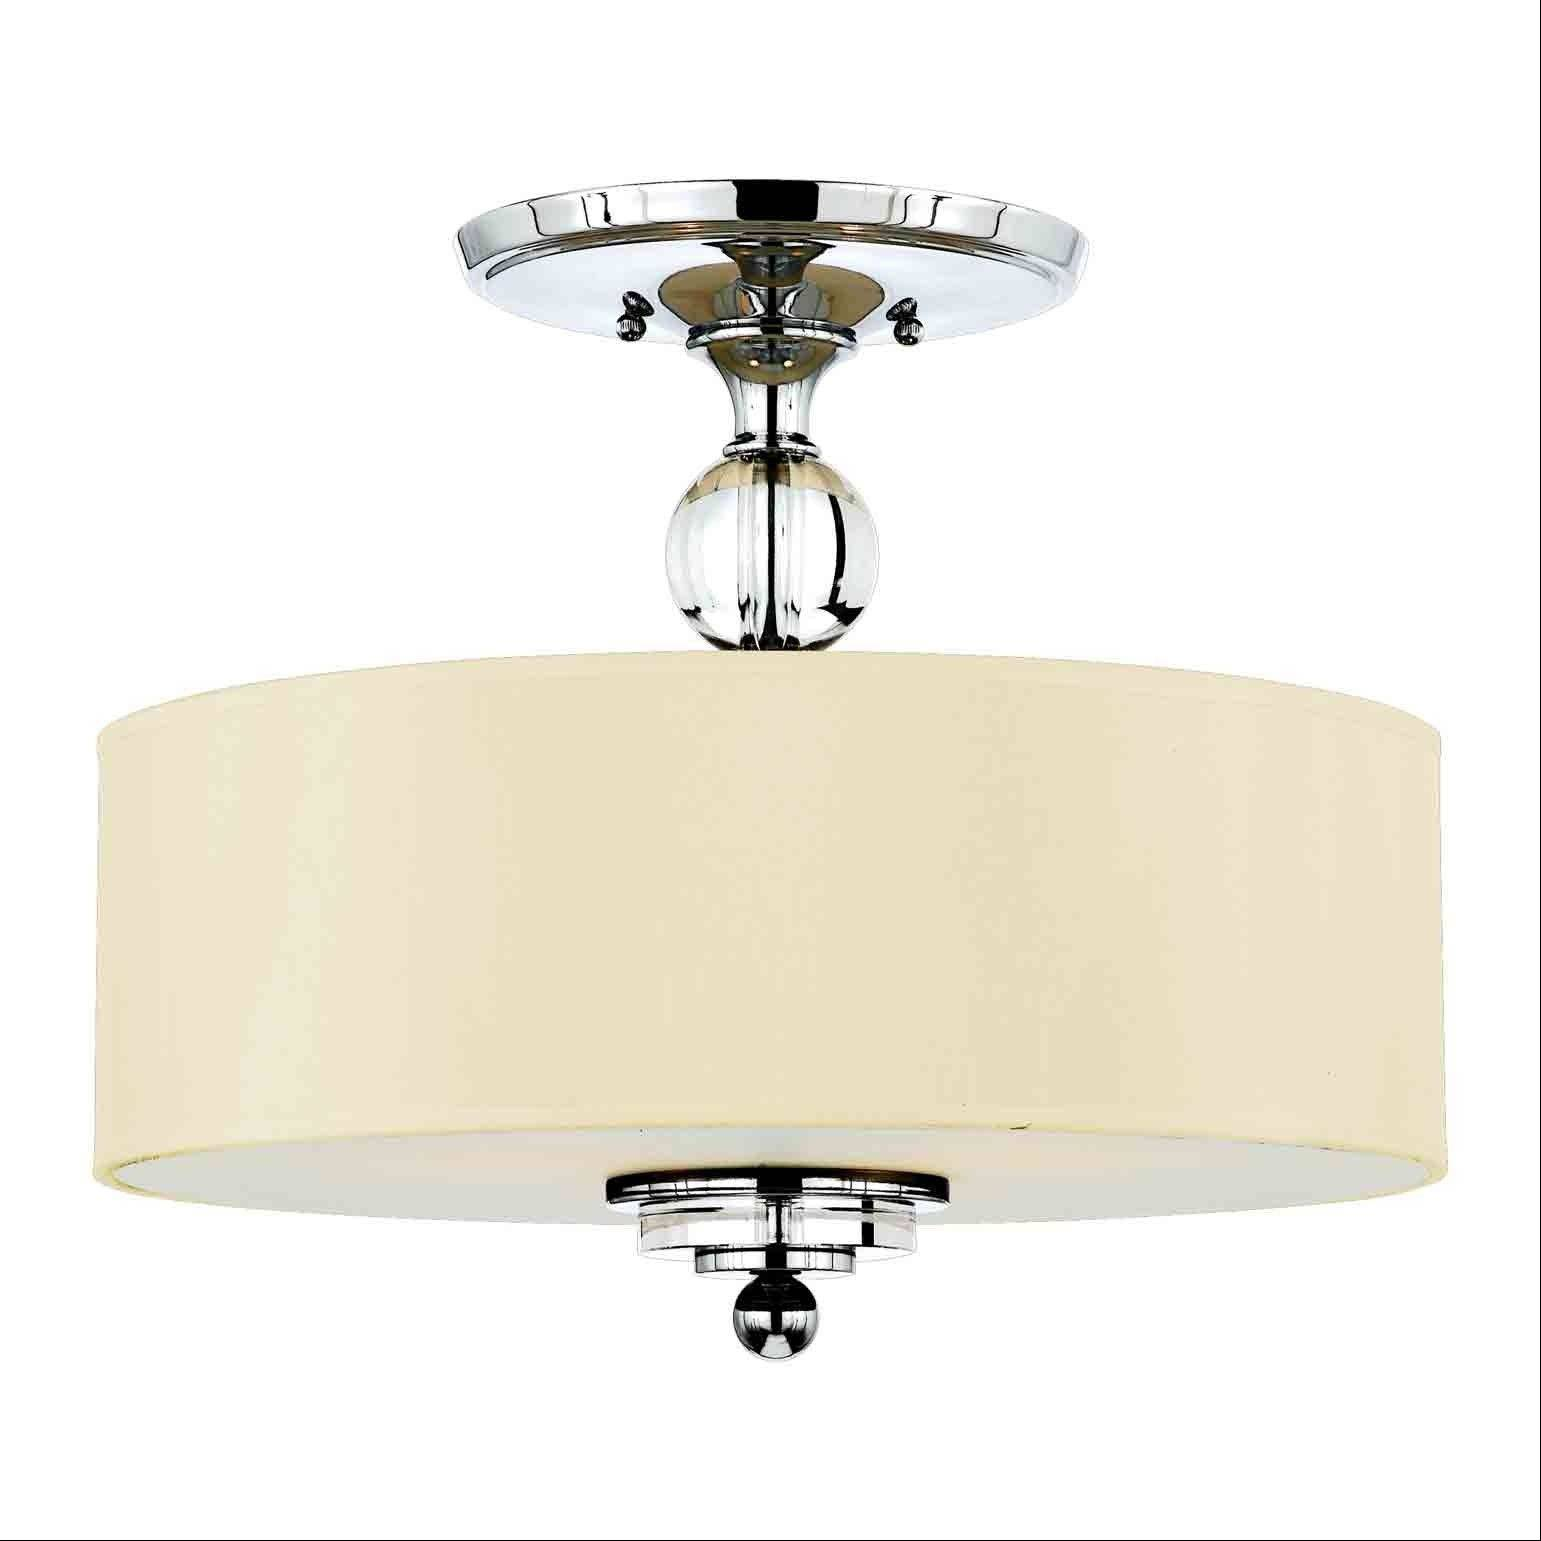 Semi-flush mount for the over the bedroom area, Quoizel Lighting Downtown Collection model DW1717C.